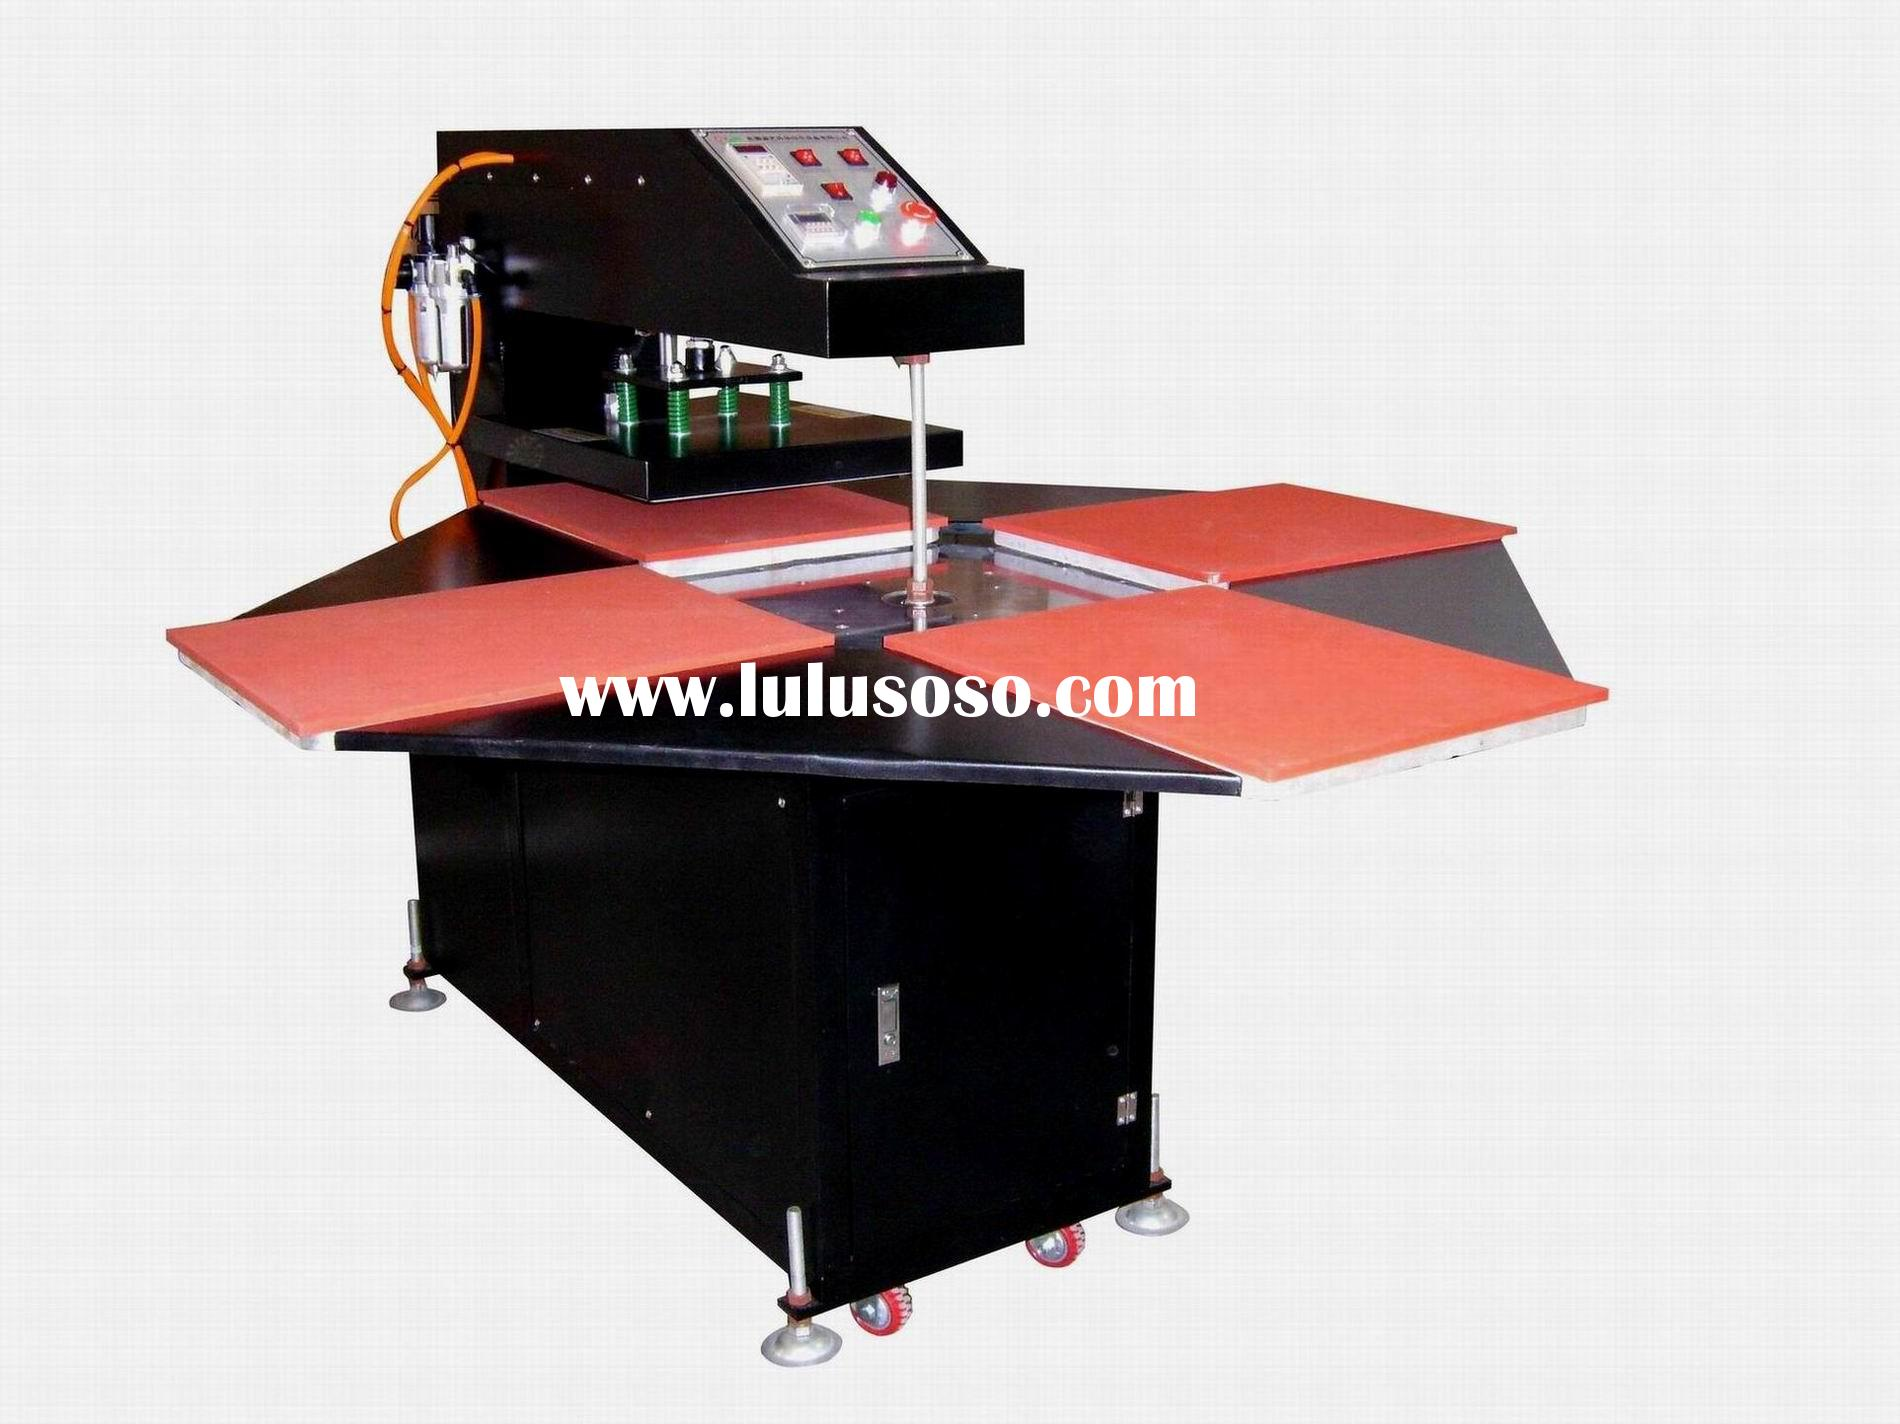 T-shirts printing machine